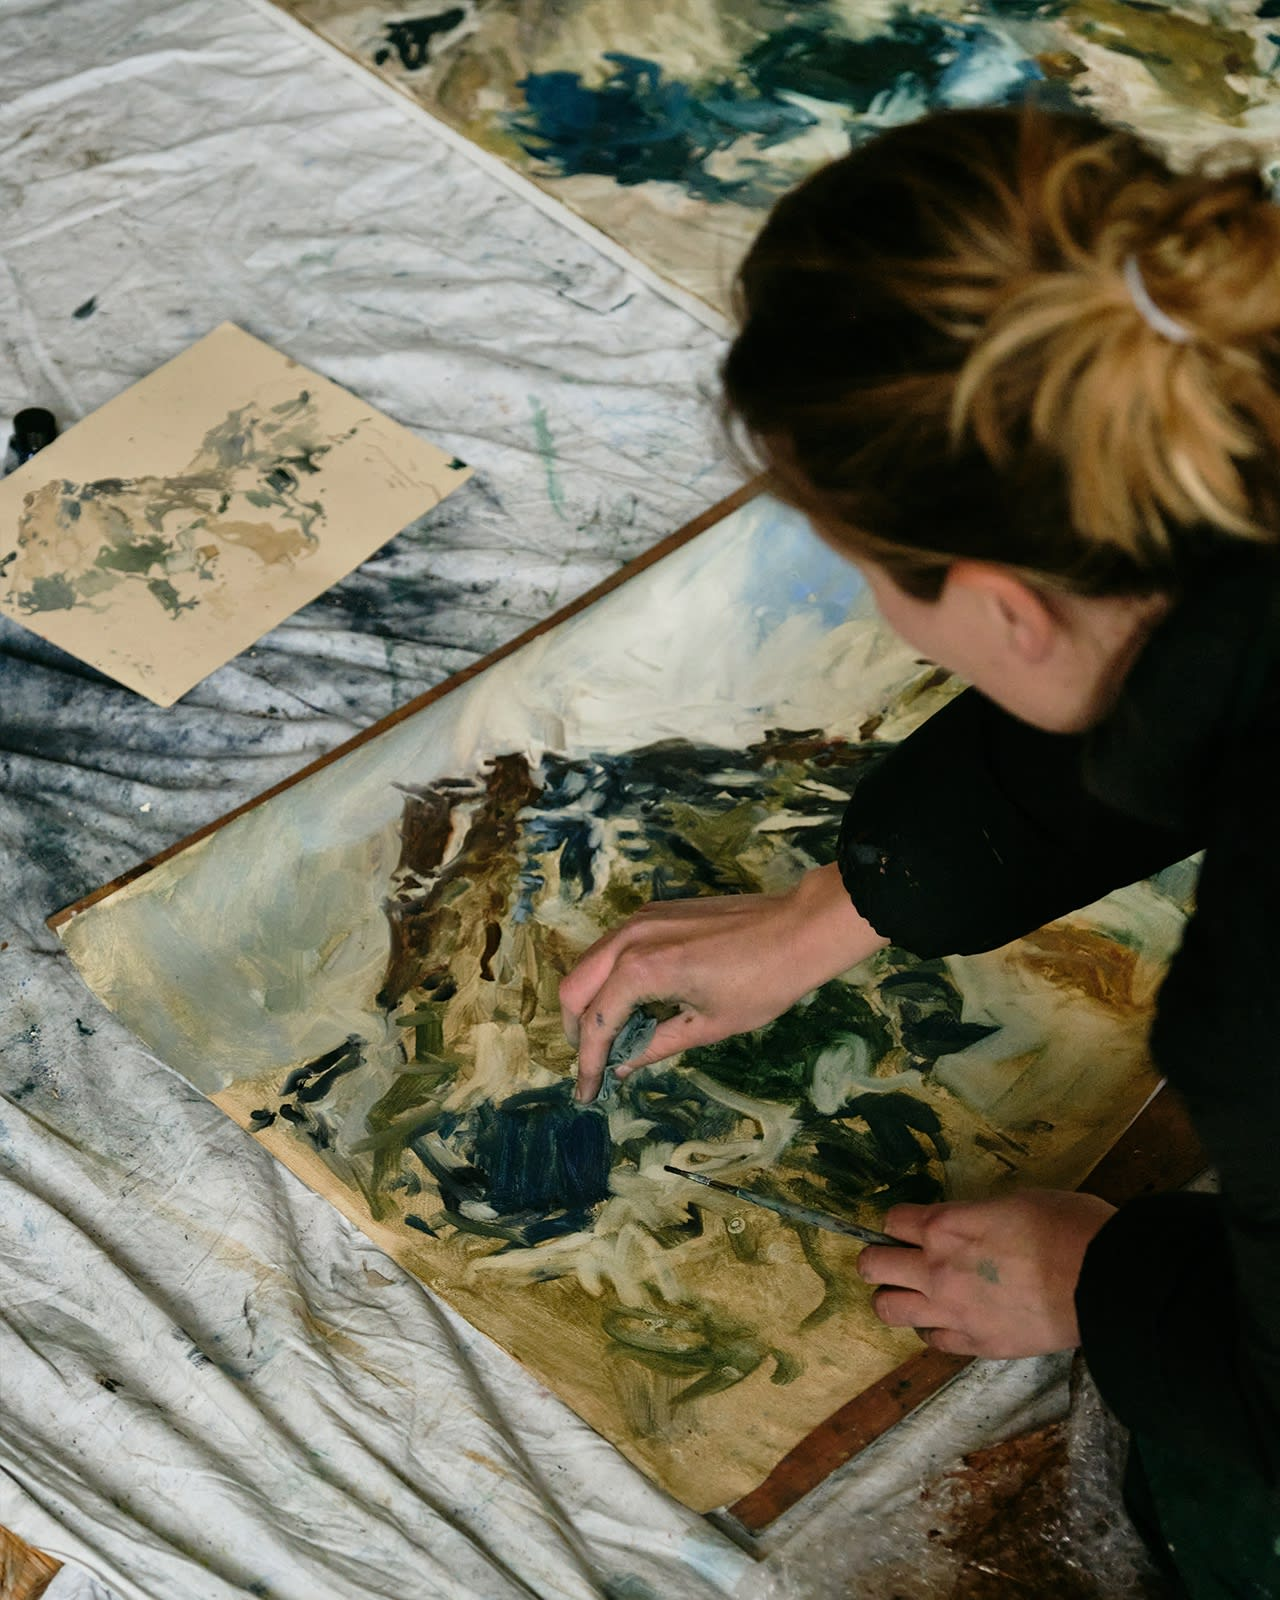 Painting mostly from memory helps bring an intensity to her works and a strong sense of energy, she says.